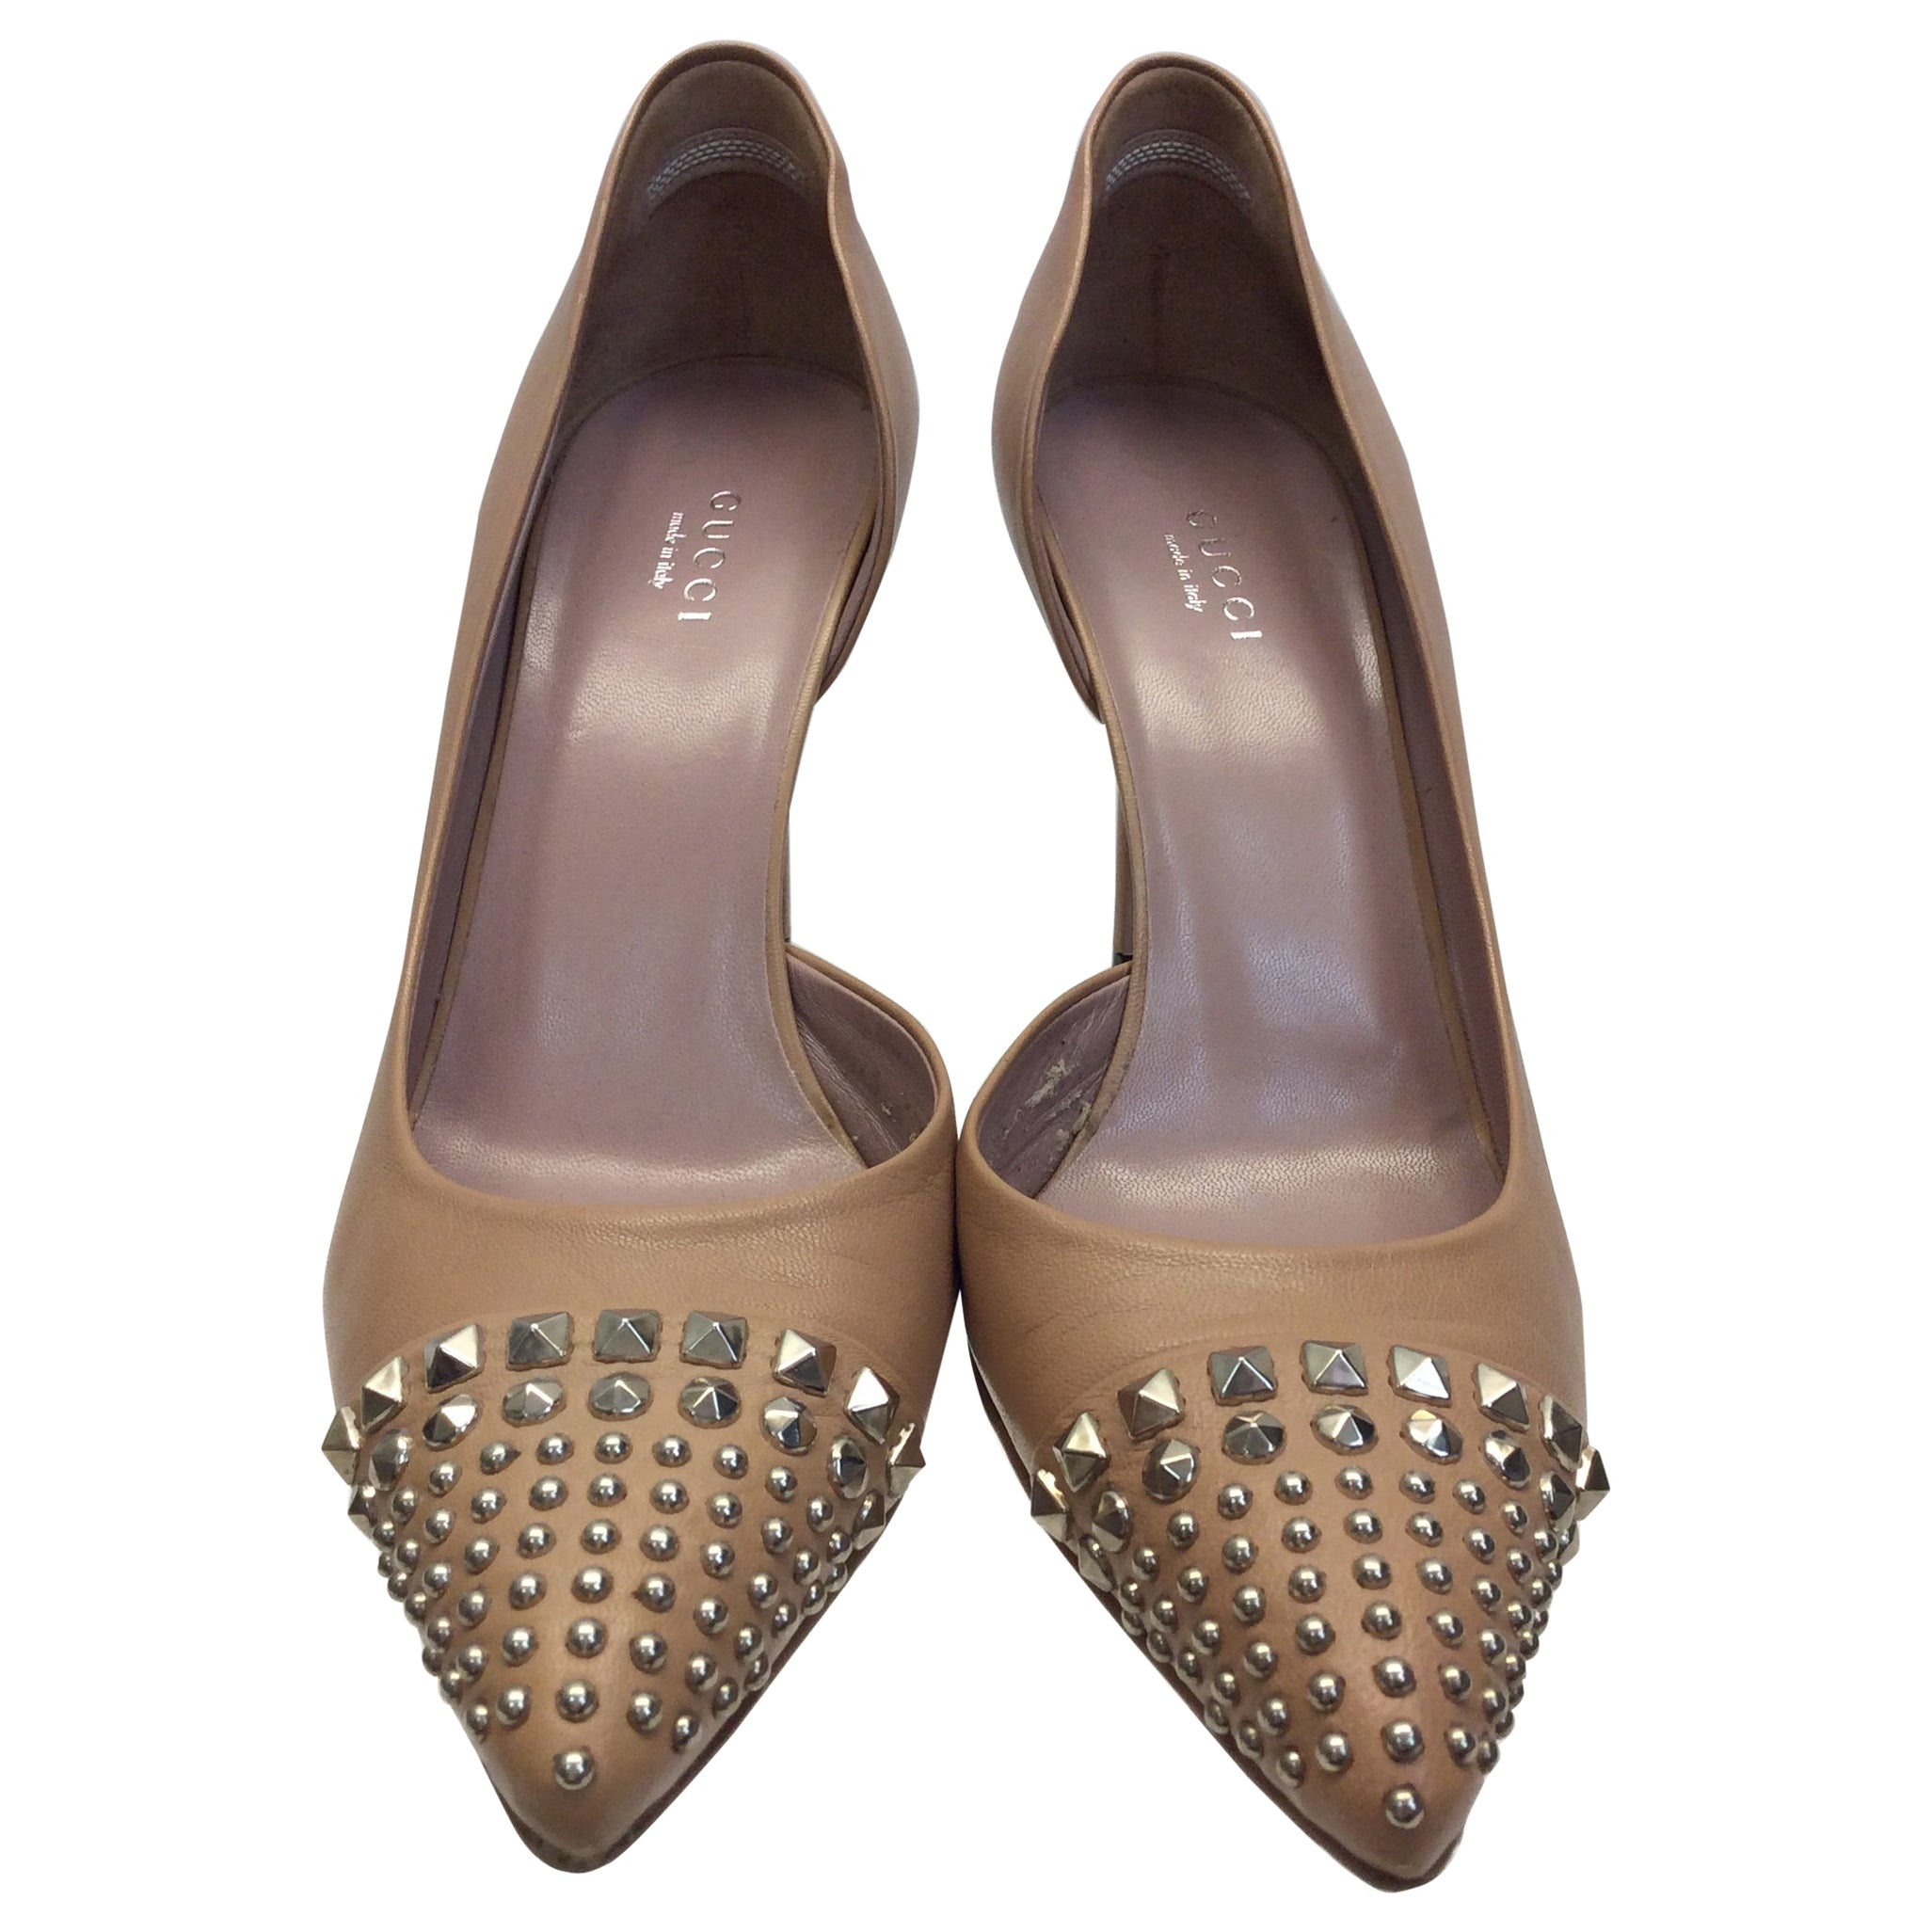 f9404521d6db Gucci Tan Leather Studded Heels For Sale at 1stdibs